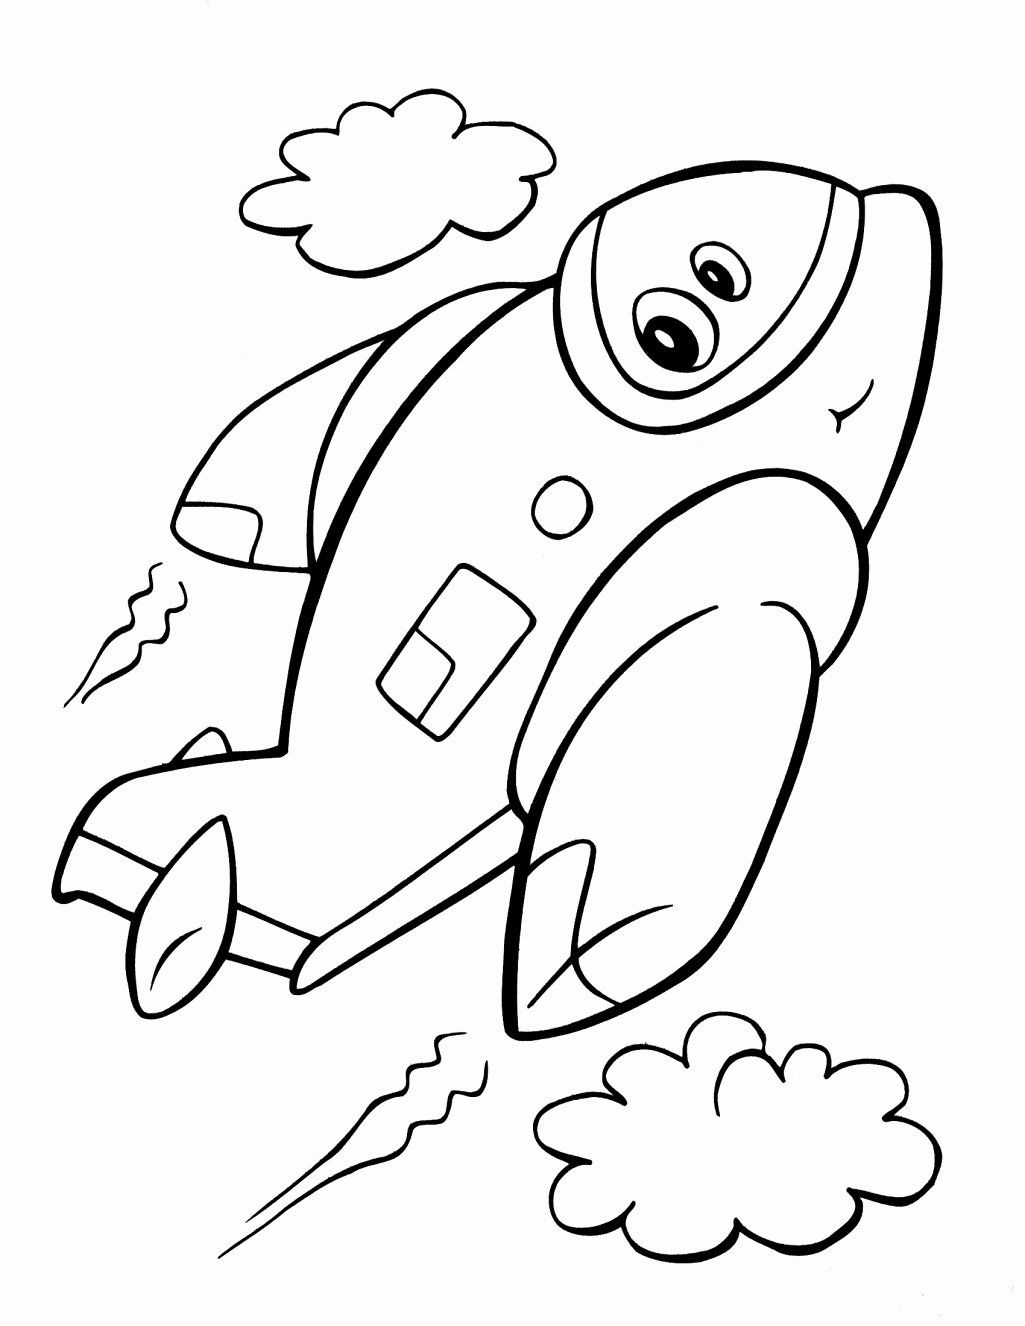 Turn Photo Into Coloring Page Luxury Convert To Coloring Page At Getcolorings Thanksgiving Coloring Pages Crayola Coloring Pages Valentine Coloring Pages